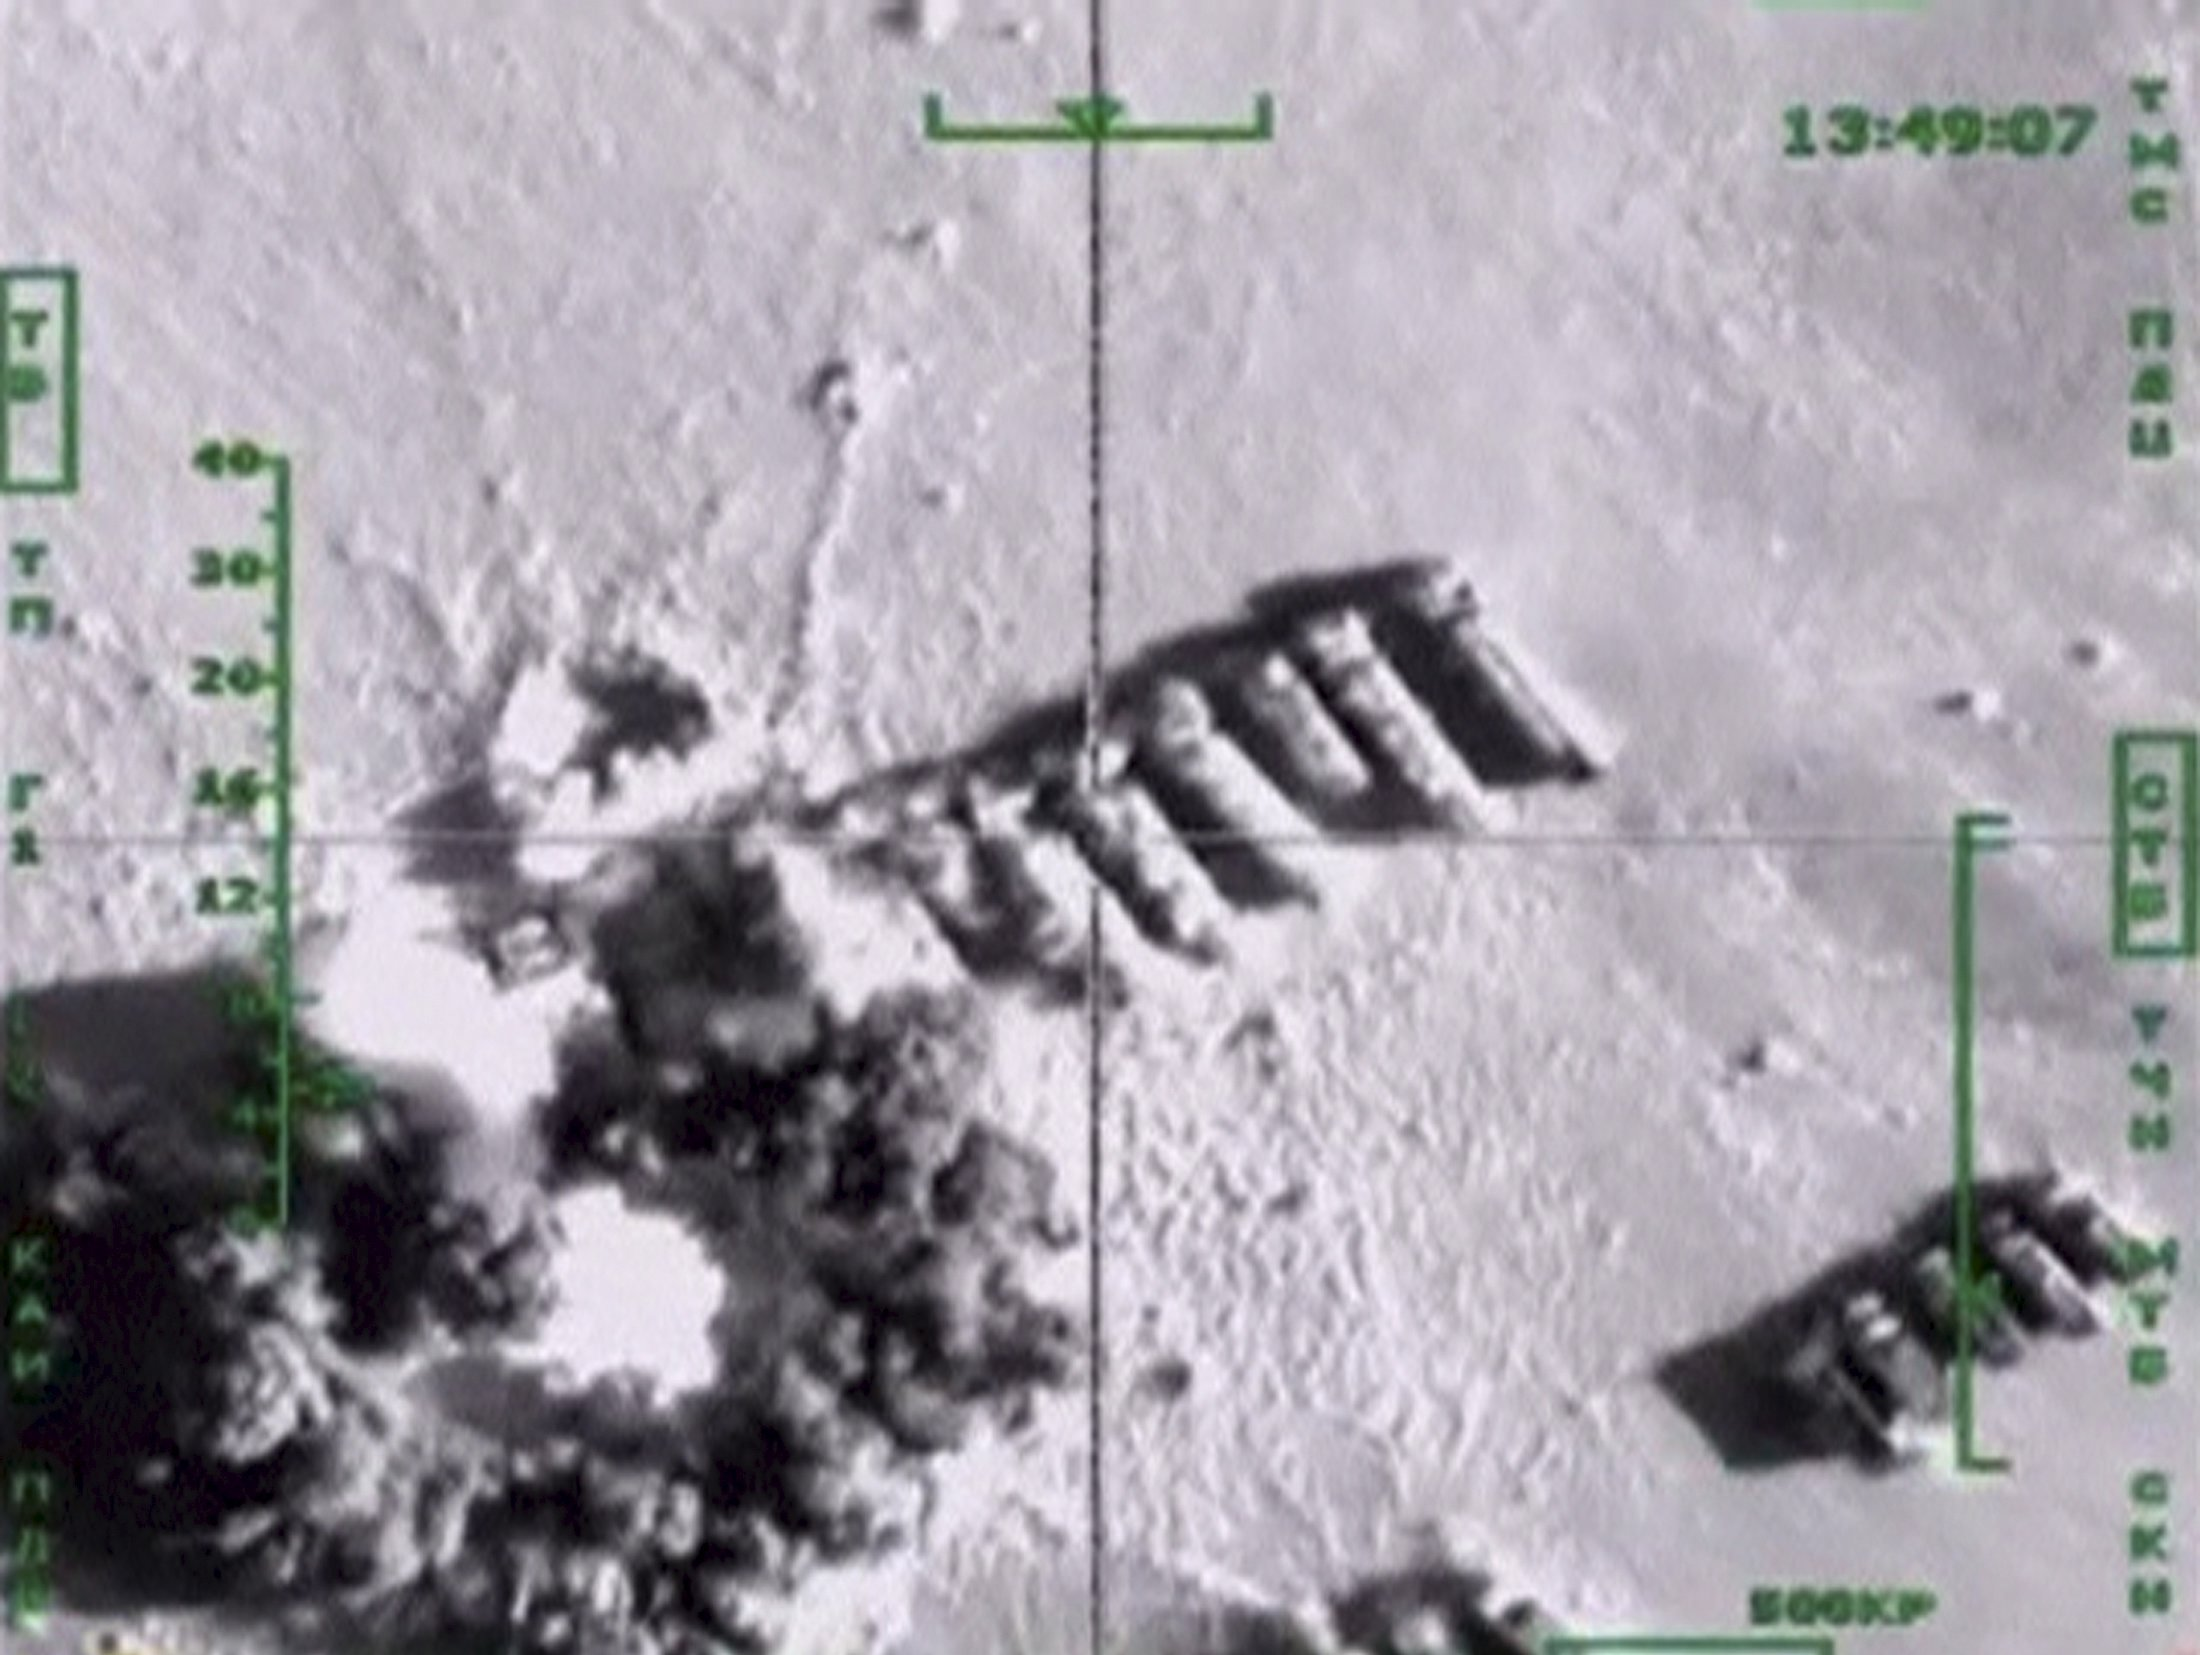 Oil trucks, which, according to Russia's Defence Ministry, are being used by Islamic State militants, are hit by air strikes carried out by Russia's air force, at an unknown location in Syria, in this still image taken from video footage released by Russia's Defence Ministry on November 18, 201